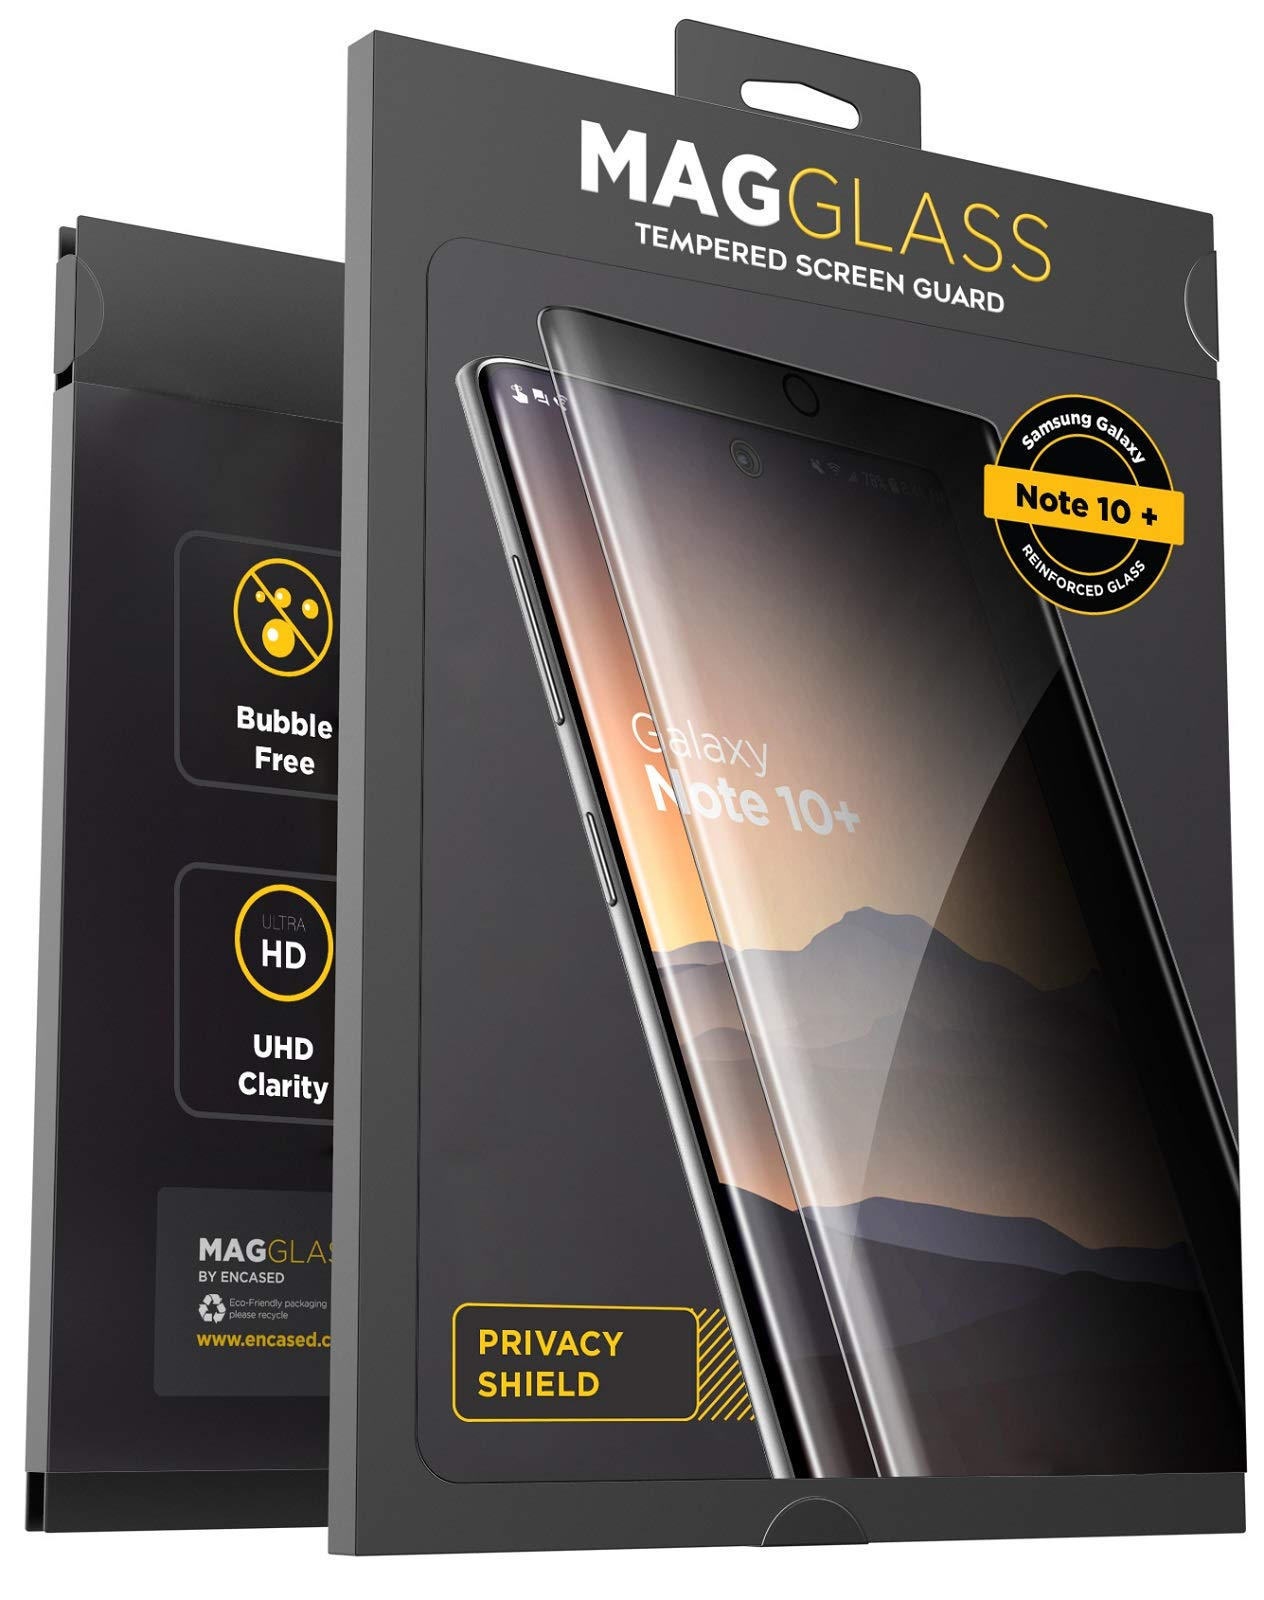 Magglass Galaxy Note 10 Plus Privacy Screen Protector - Anti Spy Fingerprint Resistant Tempered Glass Guard for Samsung Note 10+ (Case Compatible)